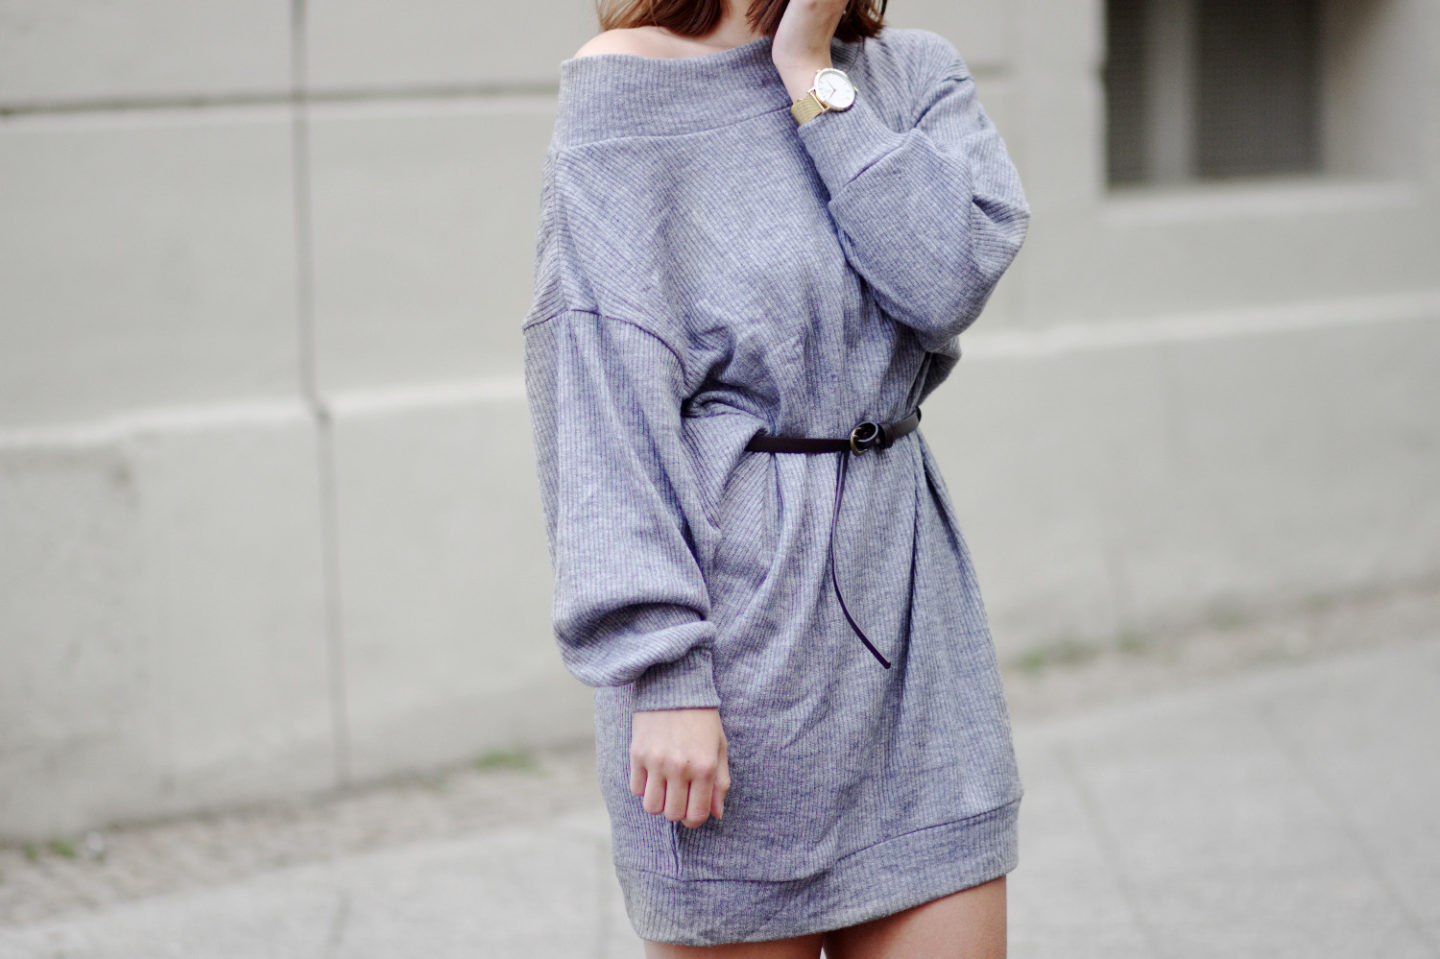 7d61d35a6384 Oversize Pullover als Kleid! Outfit mit grauem Pullover und Nike Air Force 1